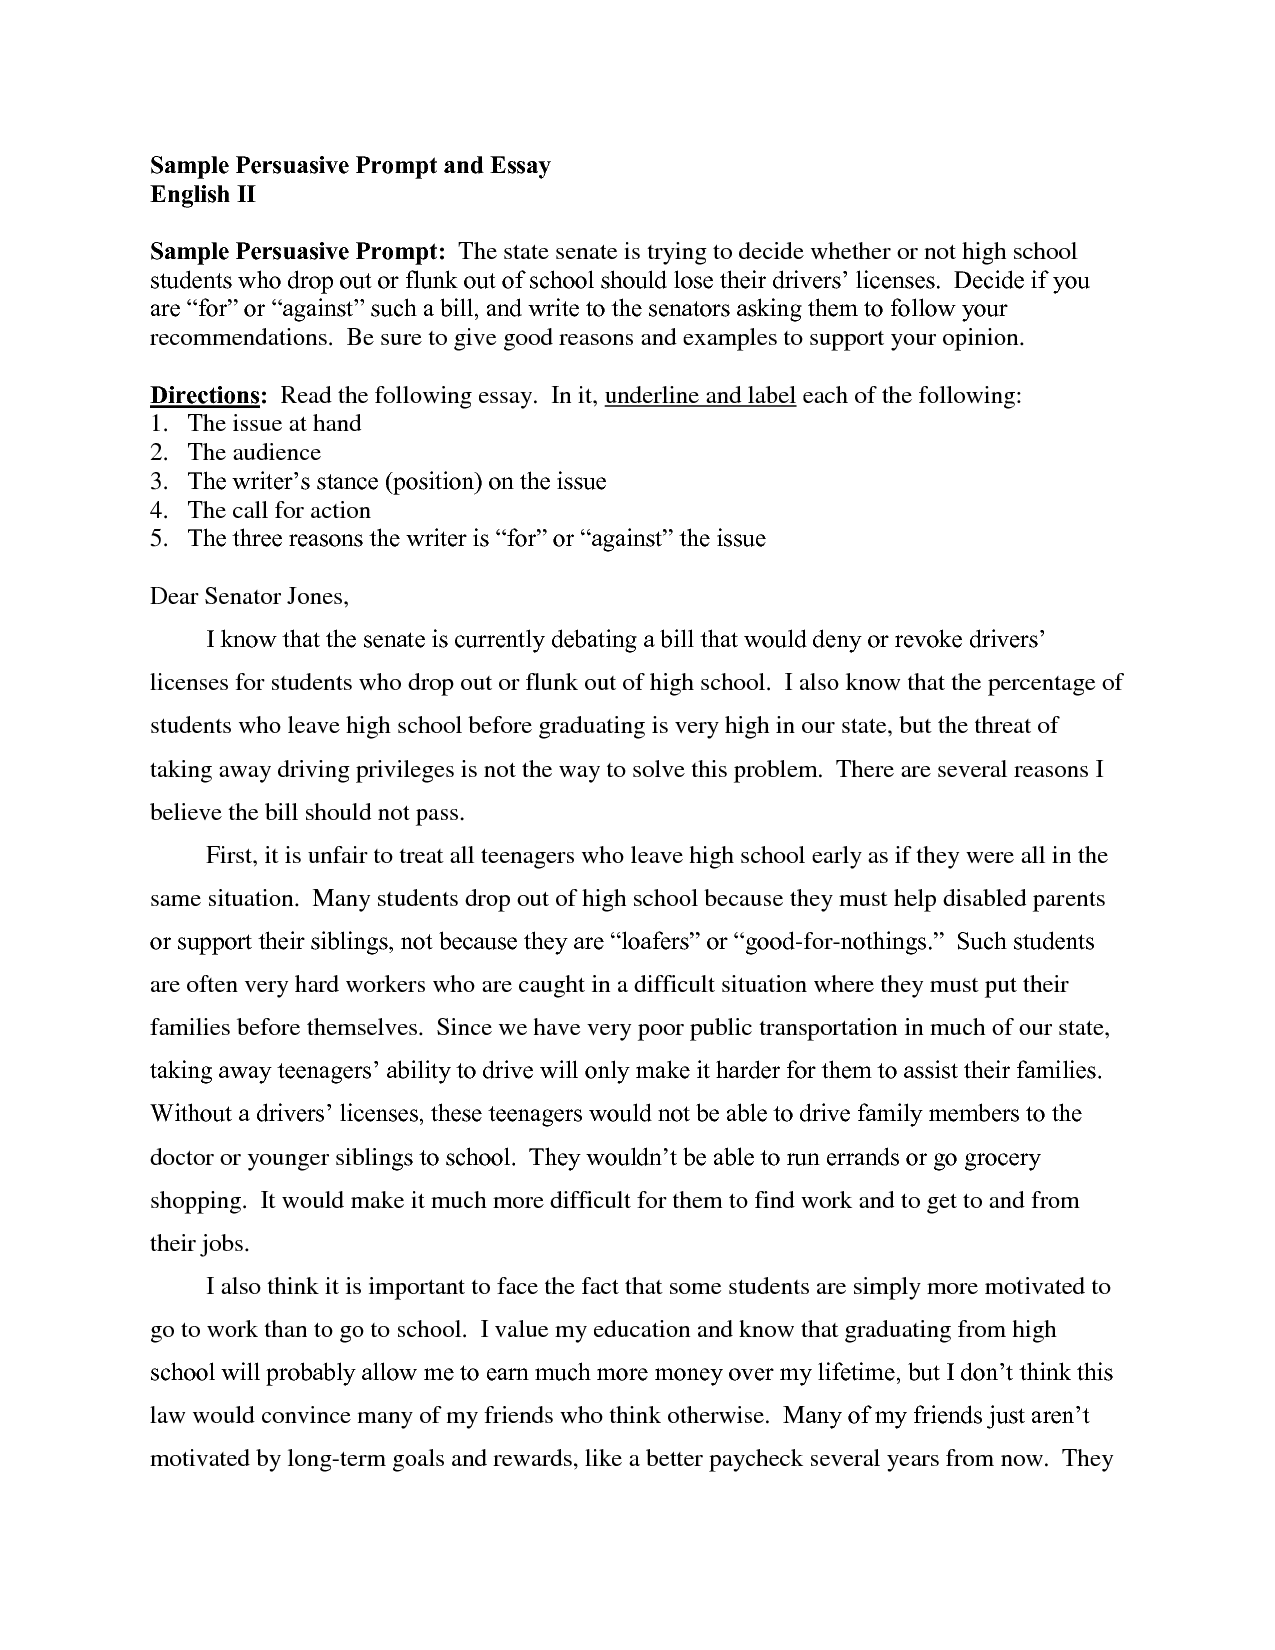 021 Research Paper Examples Of Argumentative Topics Persuasive Essay For High School Sample Ideas Highschool Students Good Prompt Funny Easy Fun List Seniors Writing English Marvelous Full